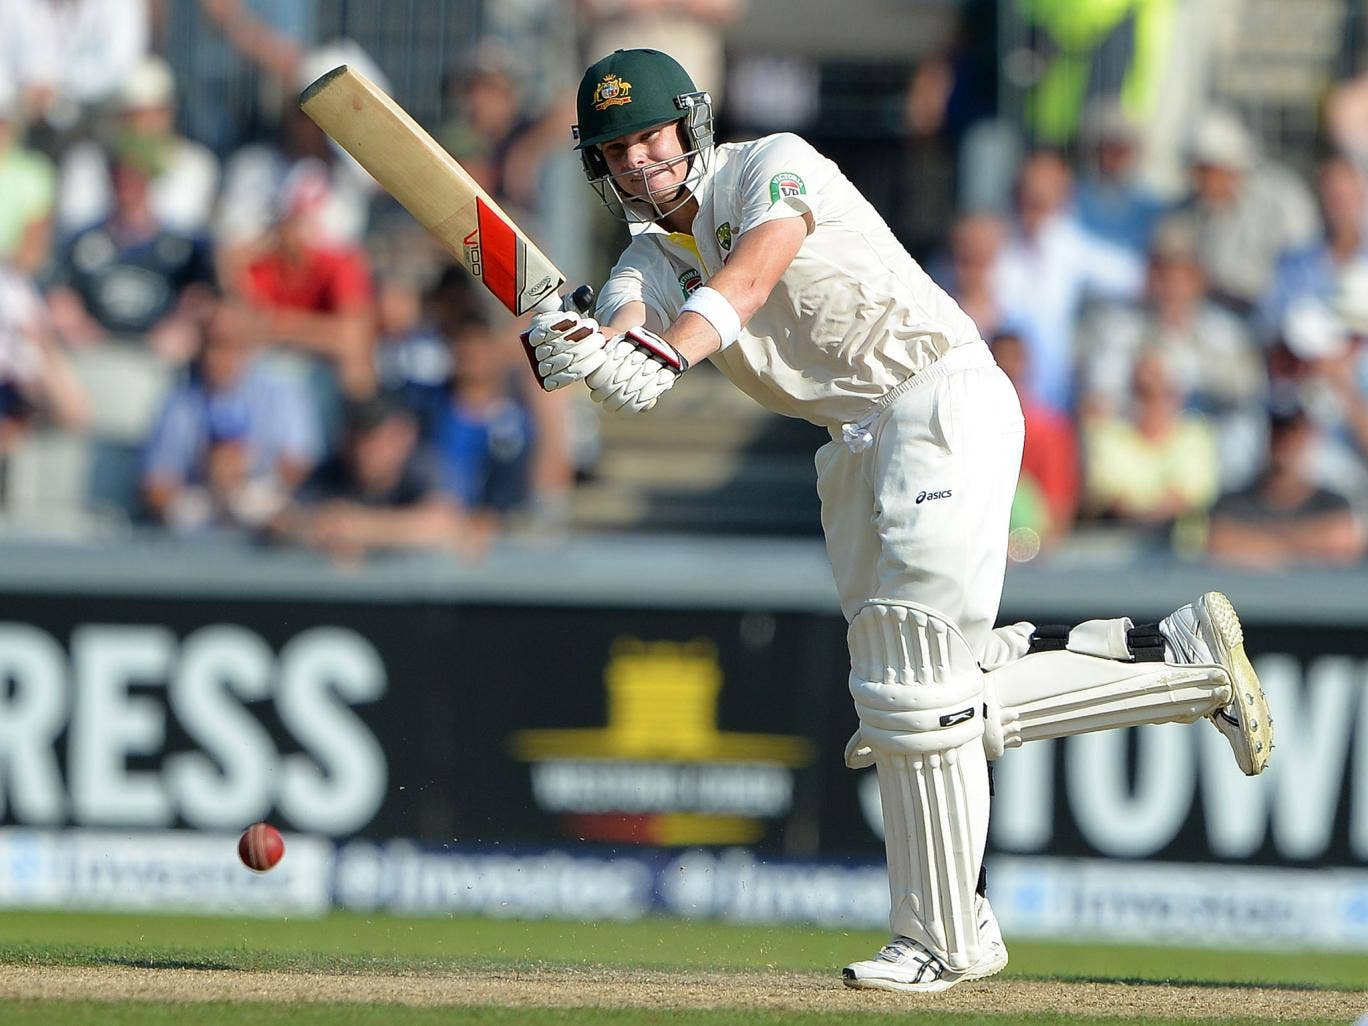 <b>Steve Smith – 8</b><br/> Easily Australia's most improved player over recent years, Smith played his part in an excellent partnership with Clarke in Australia's first innnings, scoring 89. Was unlucky to be run out by his captain when going well in the